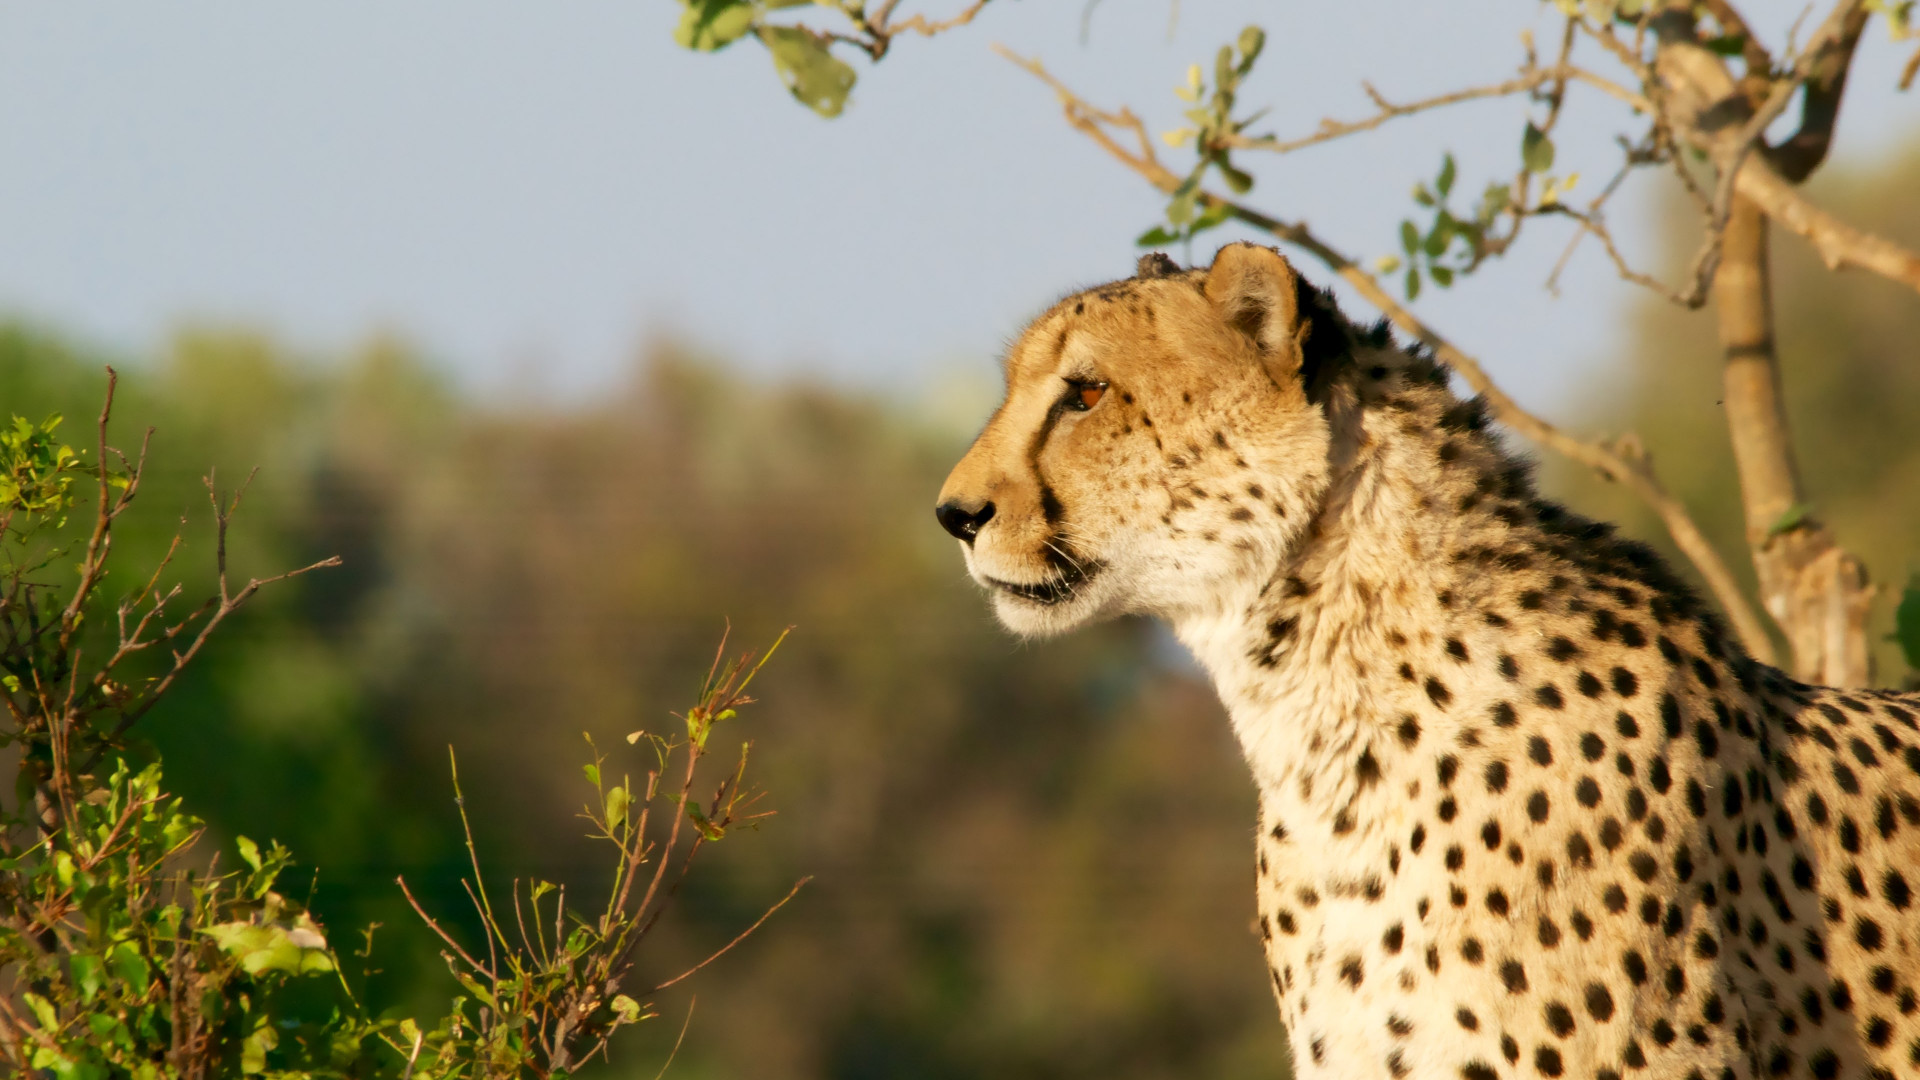 Cheetah in Ngamiland East, Botswana wallpaper 1920x1080